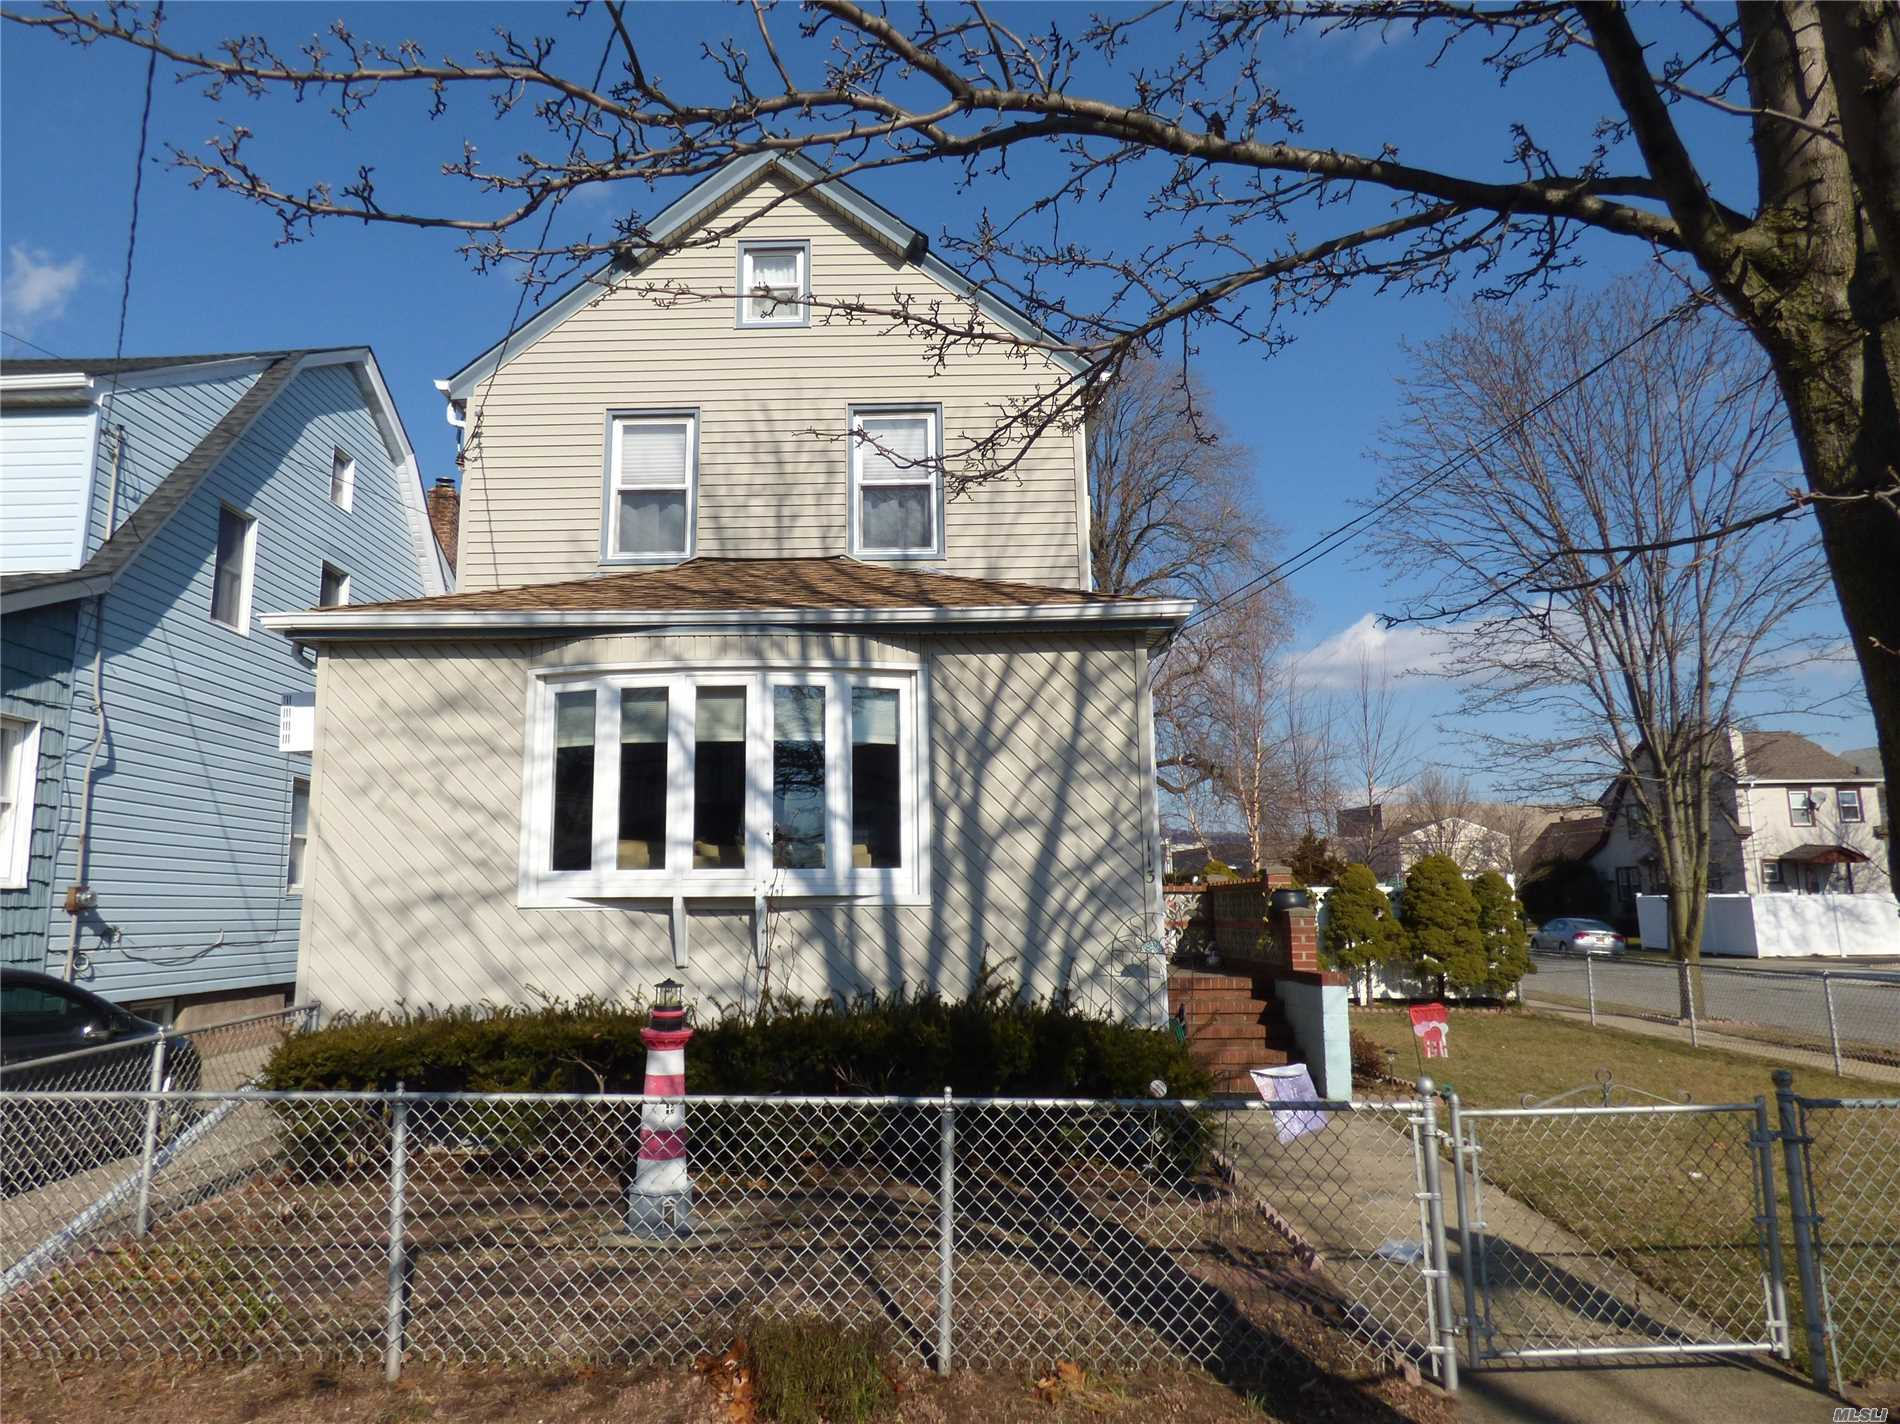 Charming Well Maintained 3 Bedroom, 1 Bath Colonial On A Corner Lot With 2 Car Garage. Oversized Living Room Opens To Formal Dining Room, And Eat In Kitchen. 2nd Floor Features 3 Bedrooms, And Updated Marble Bath With Walk In Shower; Basement Playroom, With Plenty Of Storage And Ose. Vinyl Fenced Backyard Has Hot Tub For Those Achy Joints. New Gas Boiler, New Naview Tankless Hw. Walk To Lirr And Bus, Close To All. Too Much To List .Must See!!